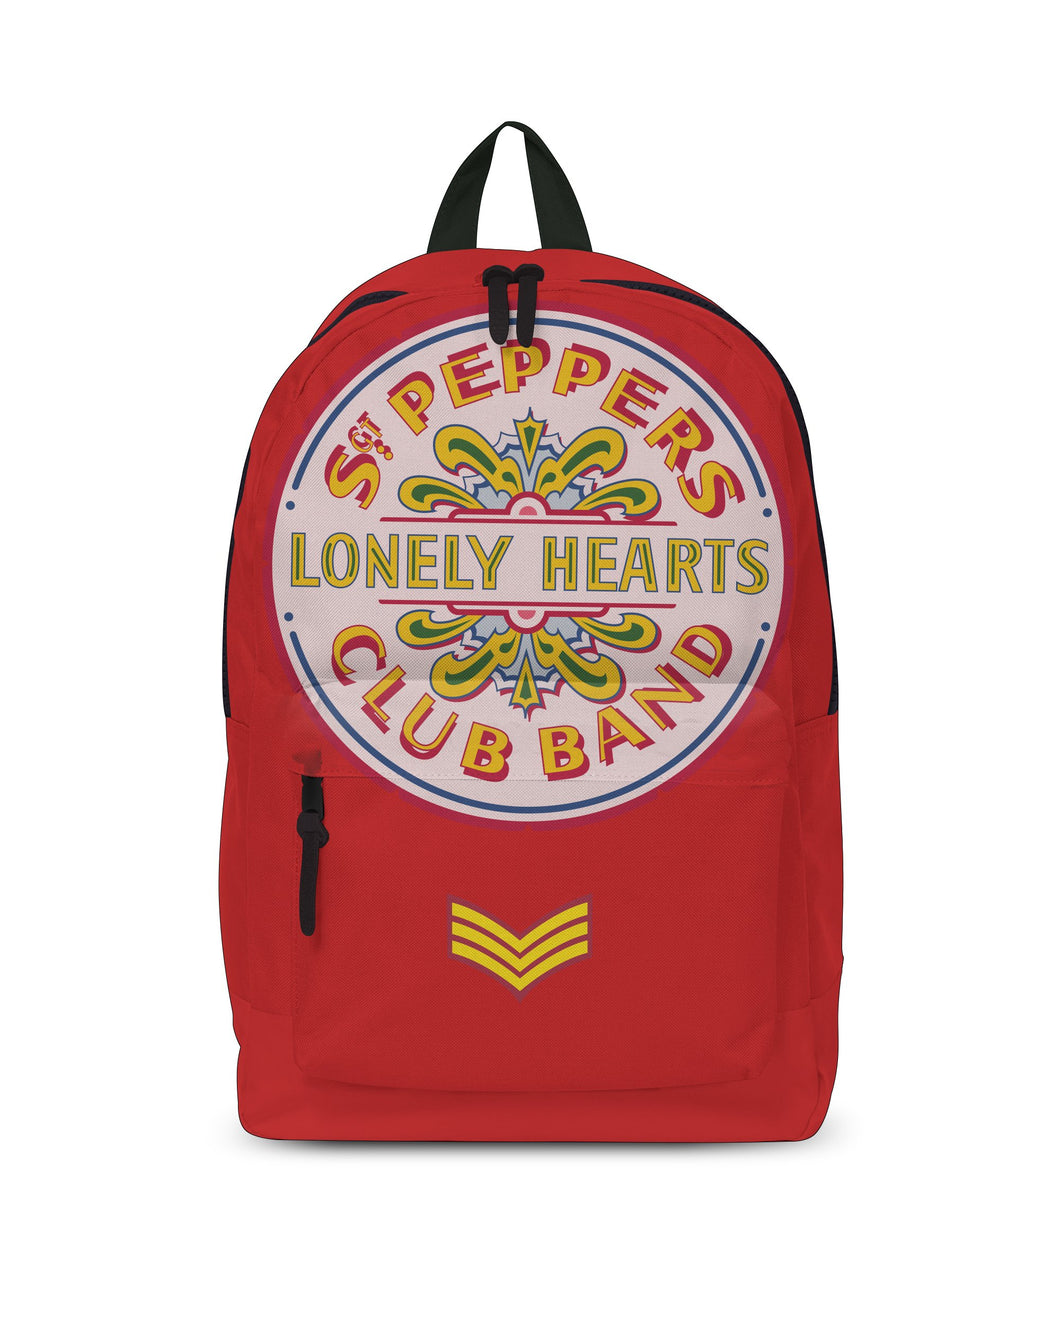 The Beatles - Lonely Hearts Red - Classic Rucksack - Grandad shirt club